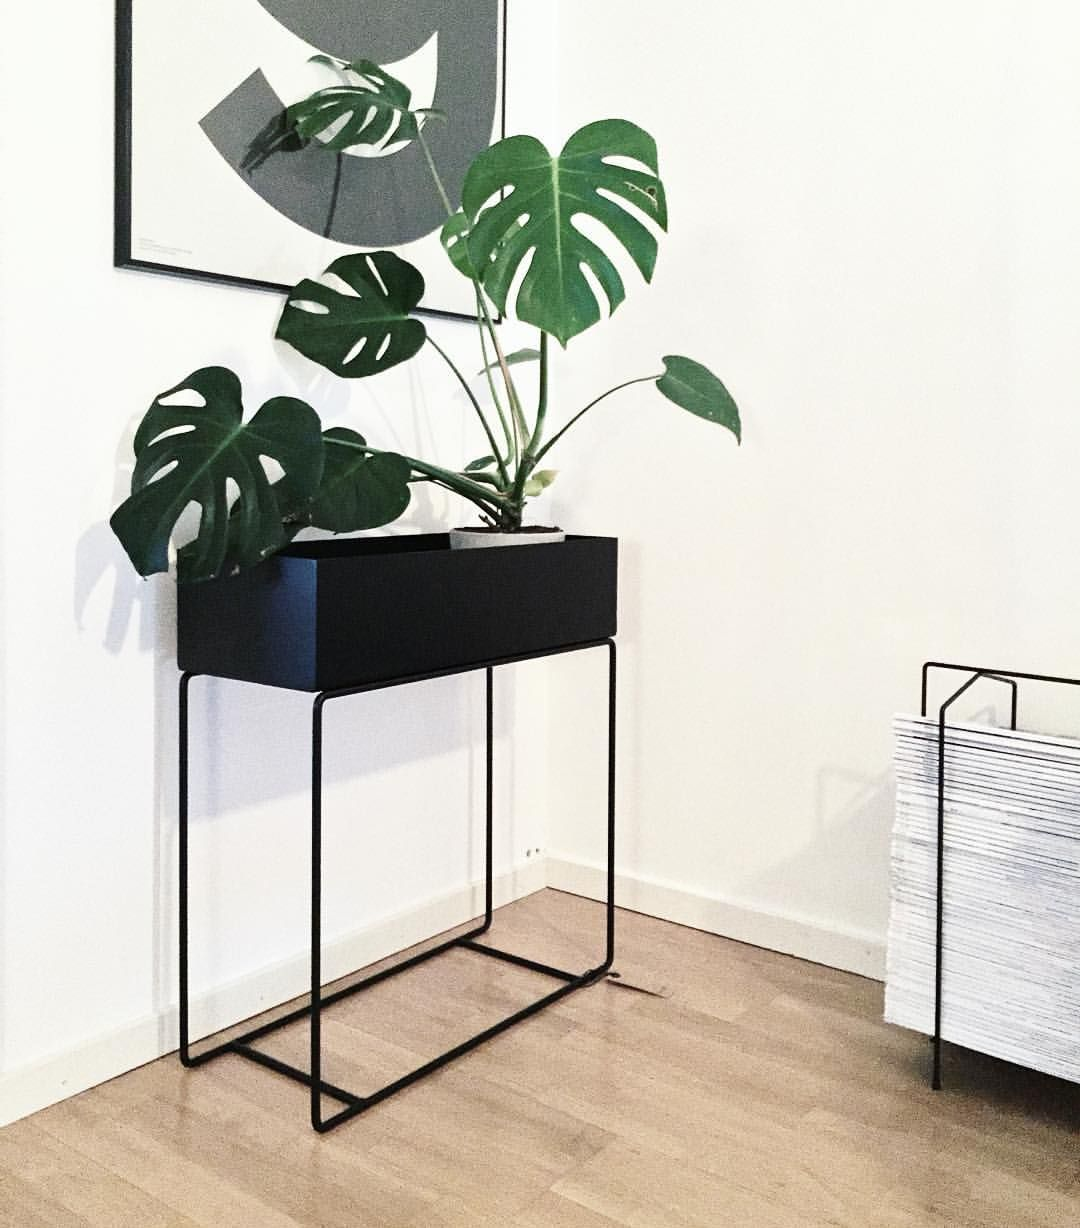 Plantbox Fr 229 N Ferm Living Plantbox Fermliving Monstera